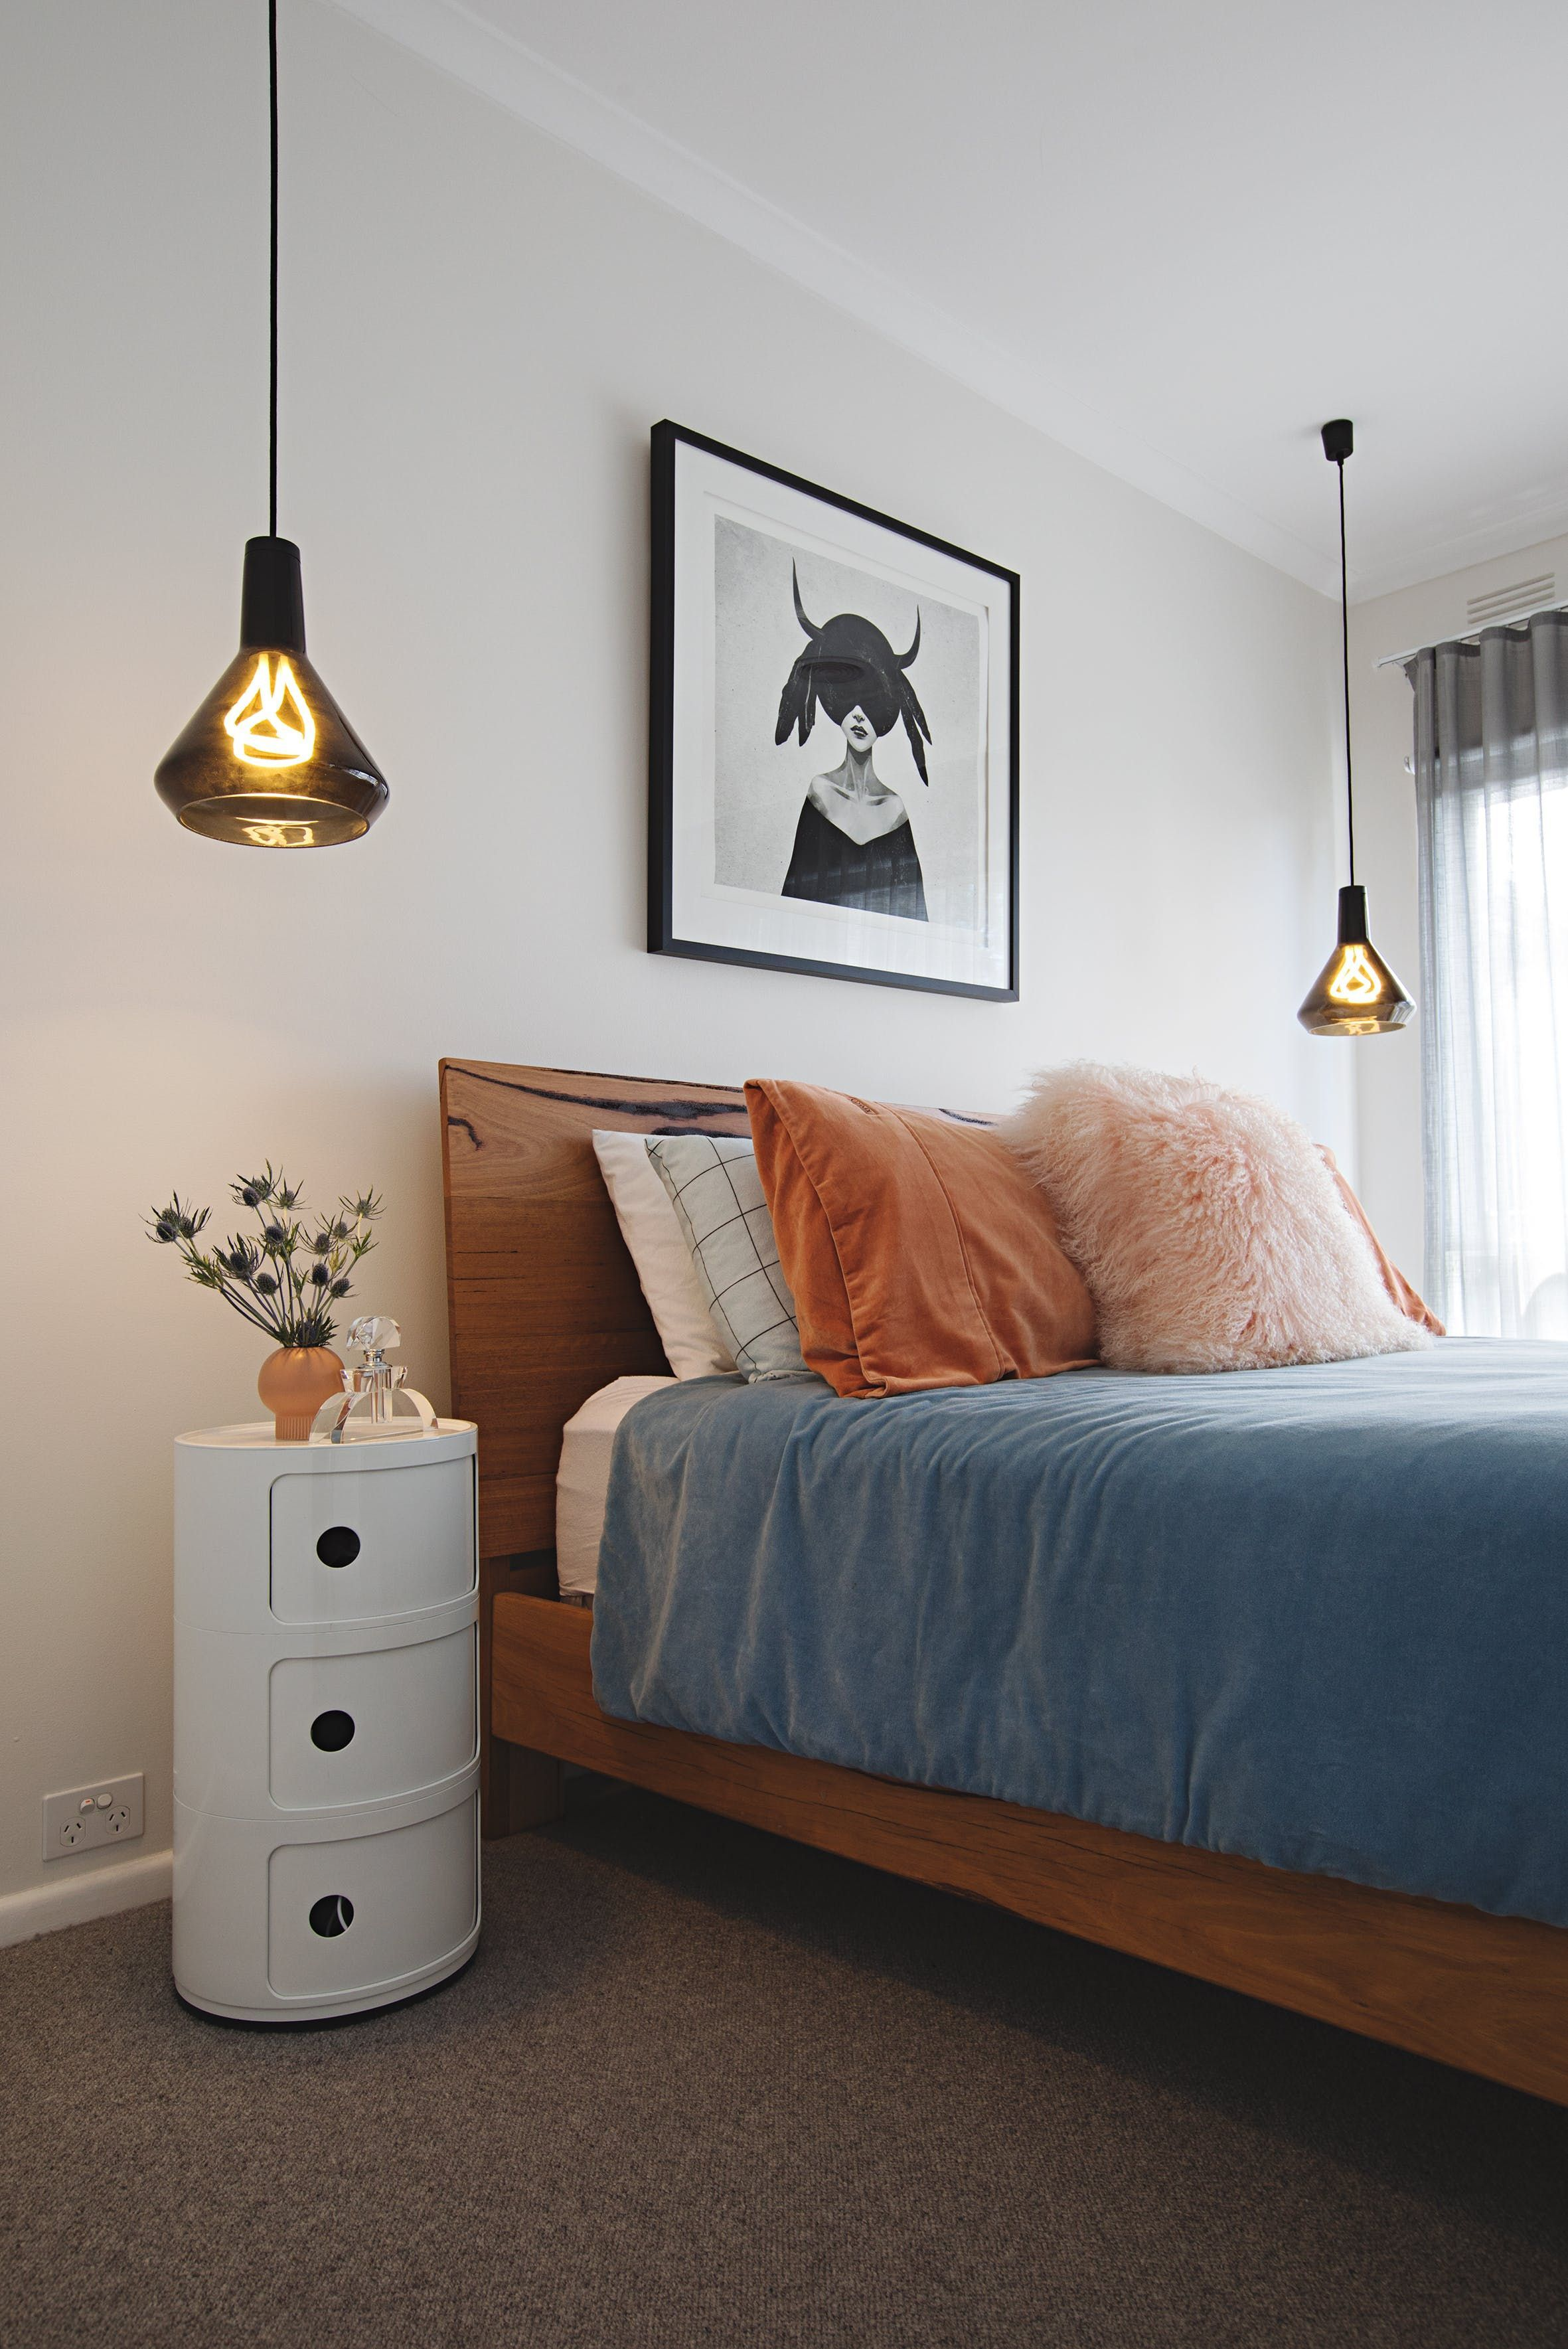 The Plumen Pendant Lights on either side of the bed are from